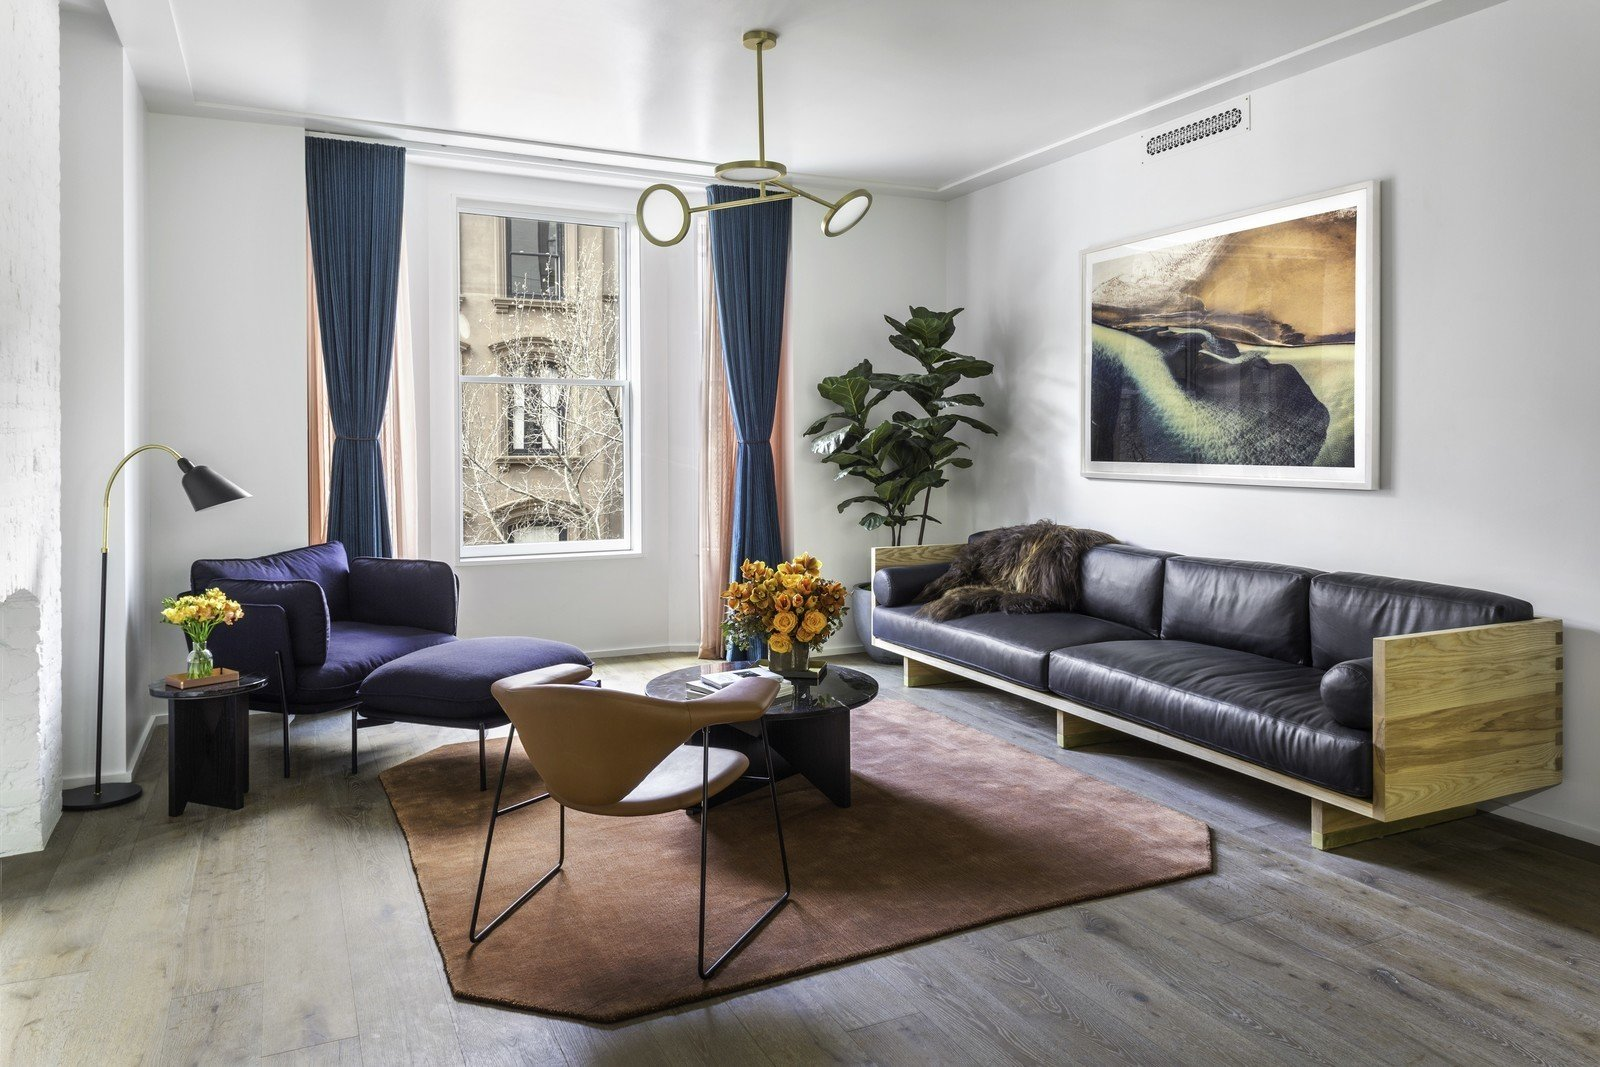 Photo 1 of 9 in Formerly Home to Superman, The Standish Offers Modernized Beaux-Arts Condos From $1.3 Million